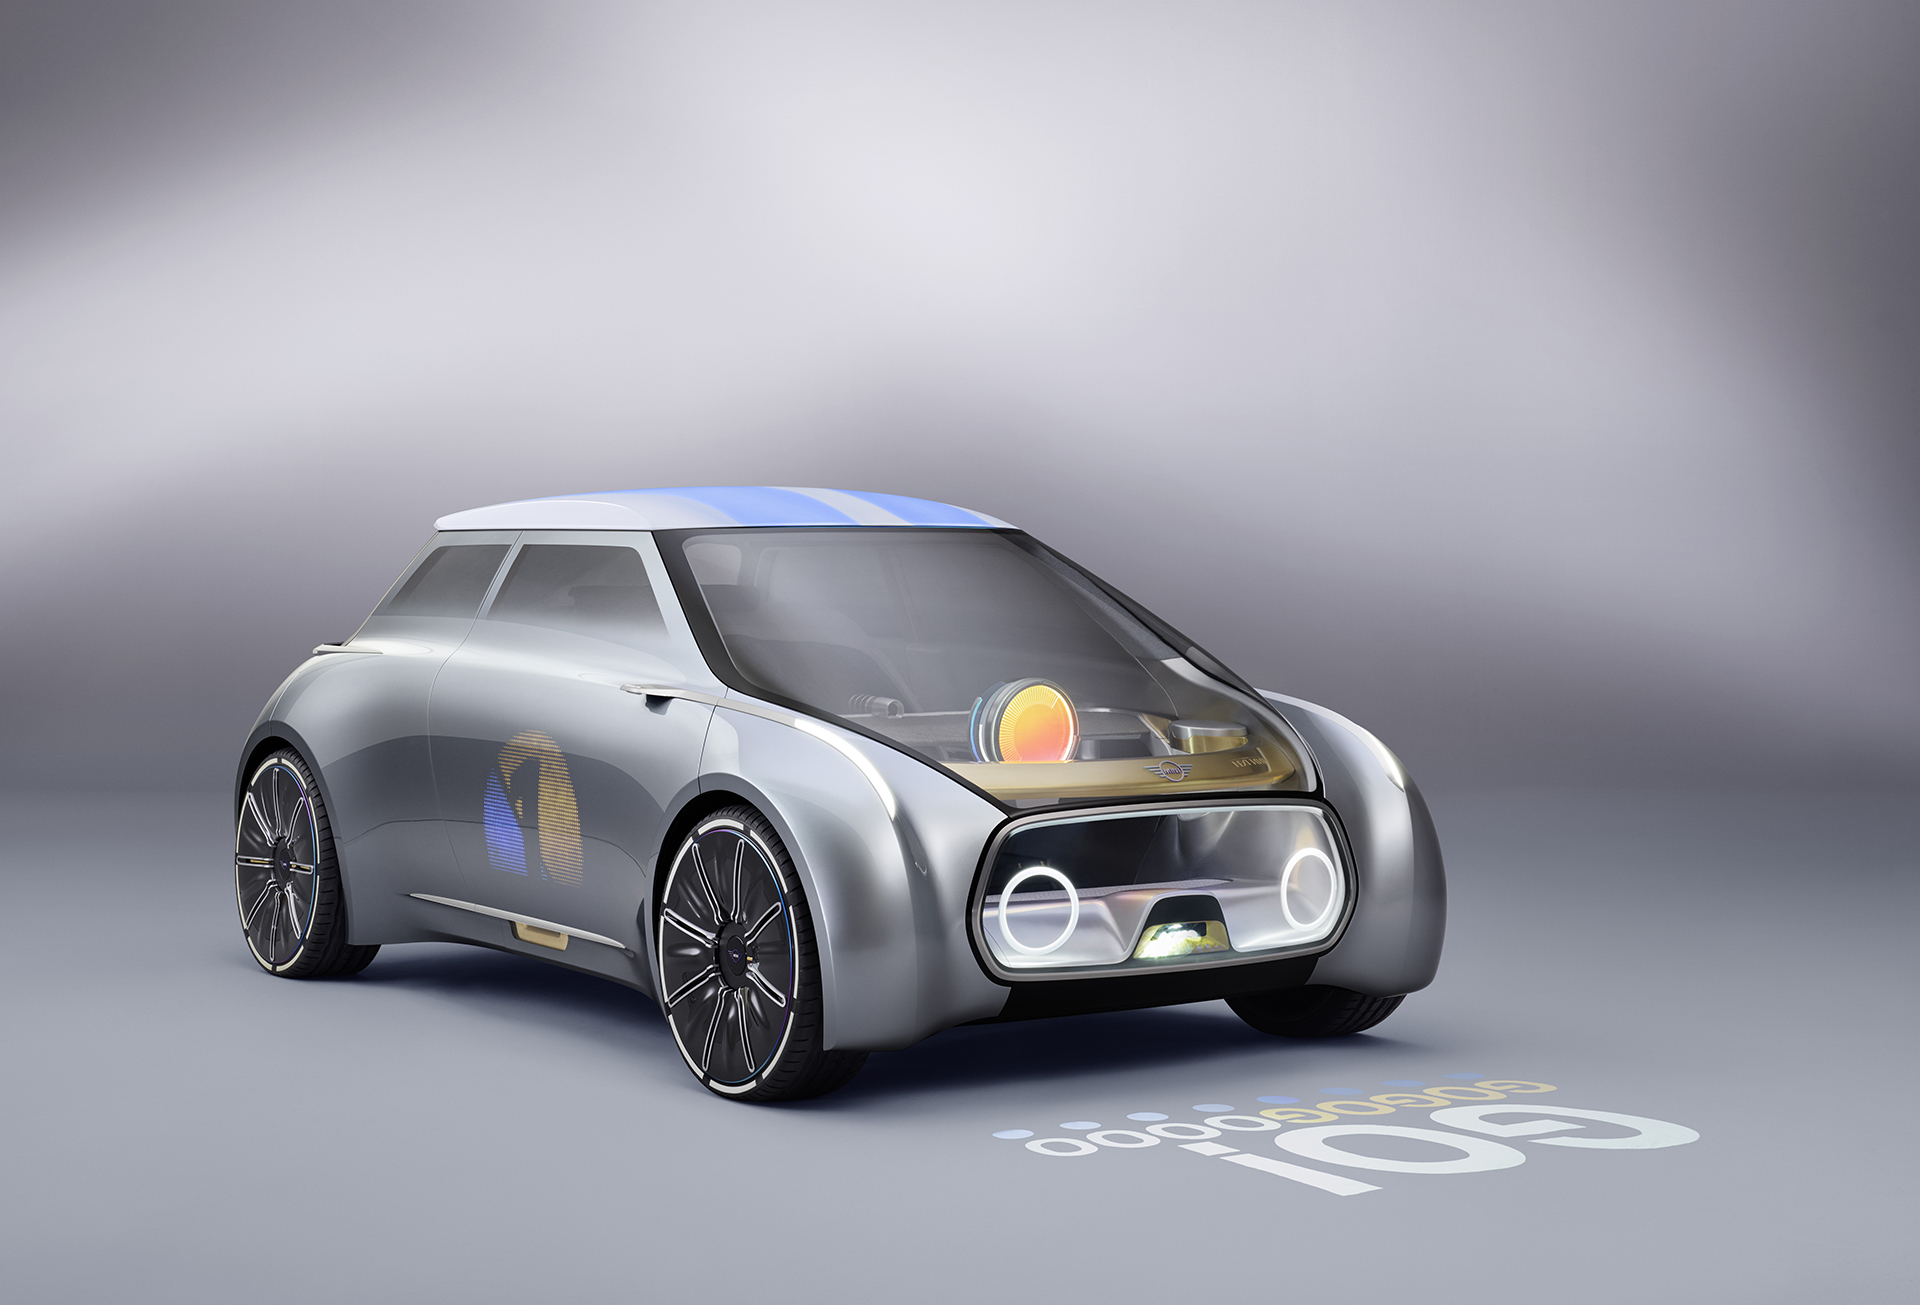 MINI VISION NEXT 100 - profil avant / front side-face